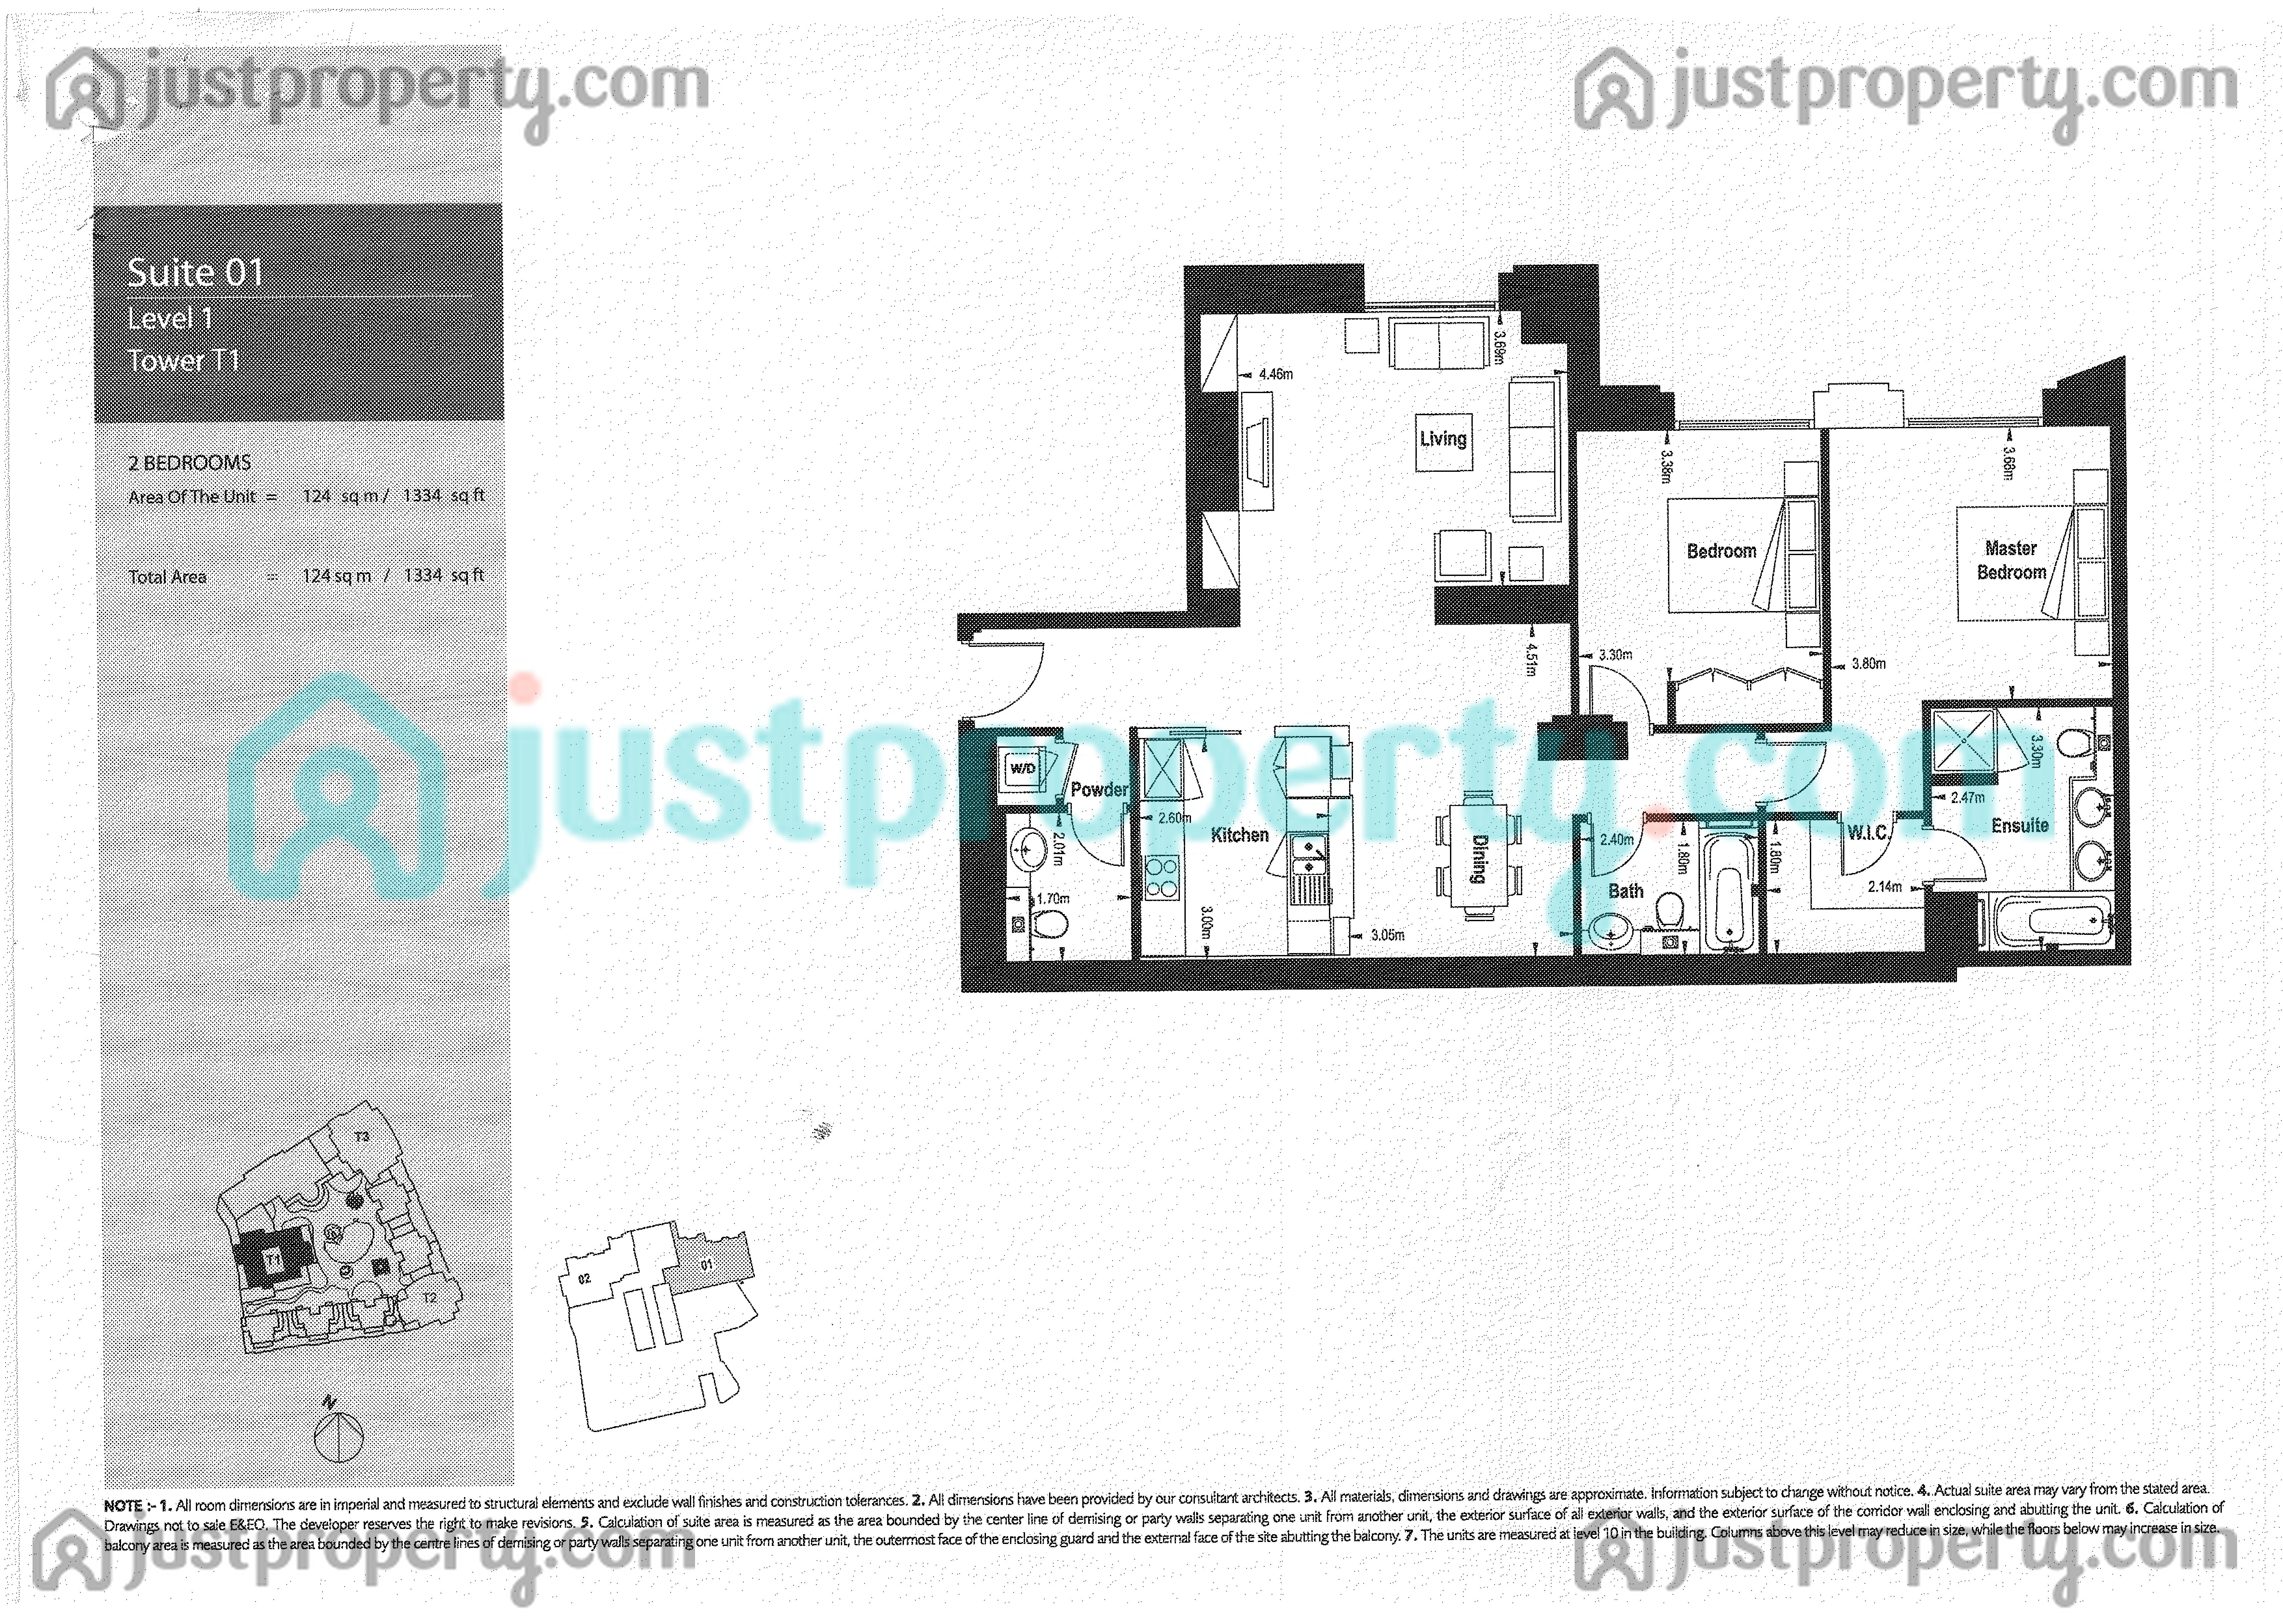 Floor Plans For Tower 8 T1